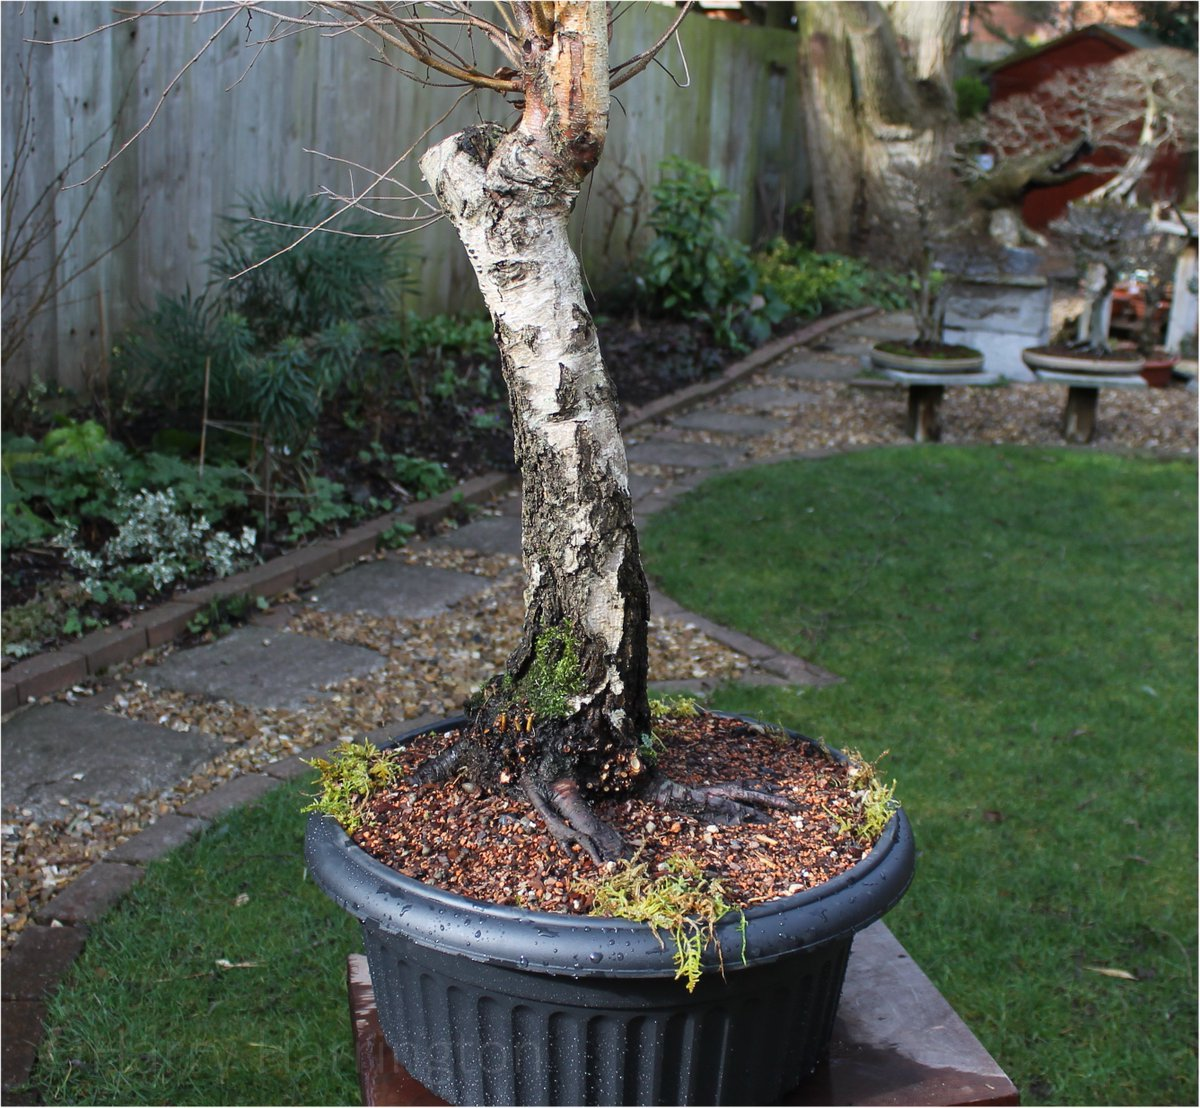 Harry Harrington On Twitter After A Visit Yesterday From Alex Of The Ebpc And Thor Holvila I Headed Off And Collected A Couple Of Large Betula Pendula Silver Birch Including This Beauty Now